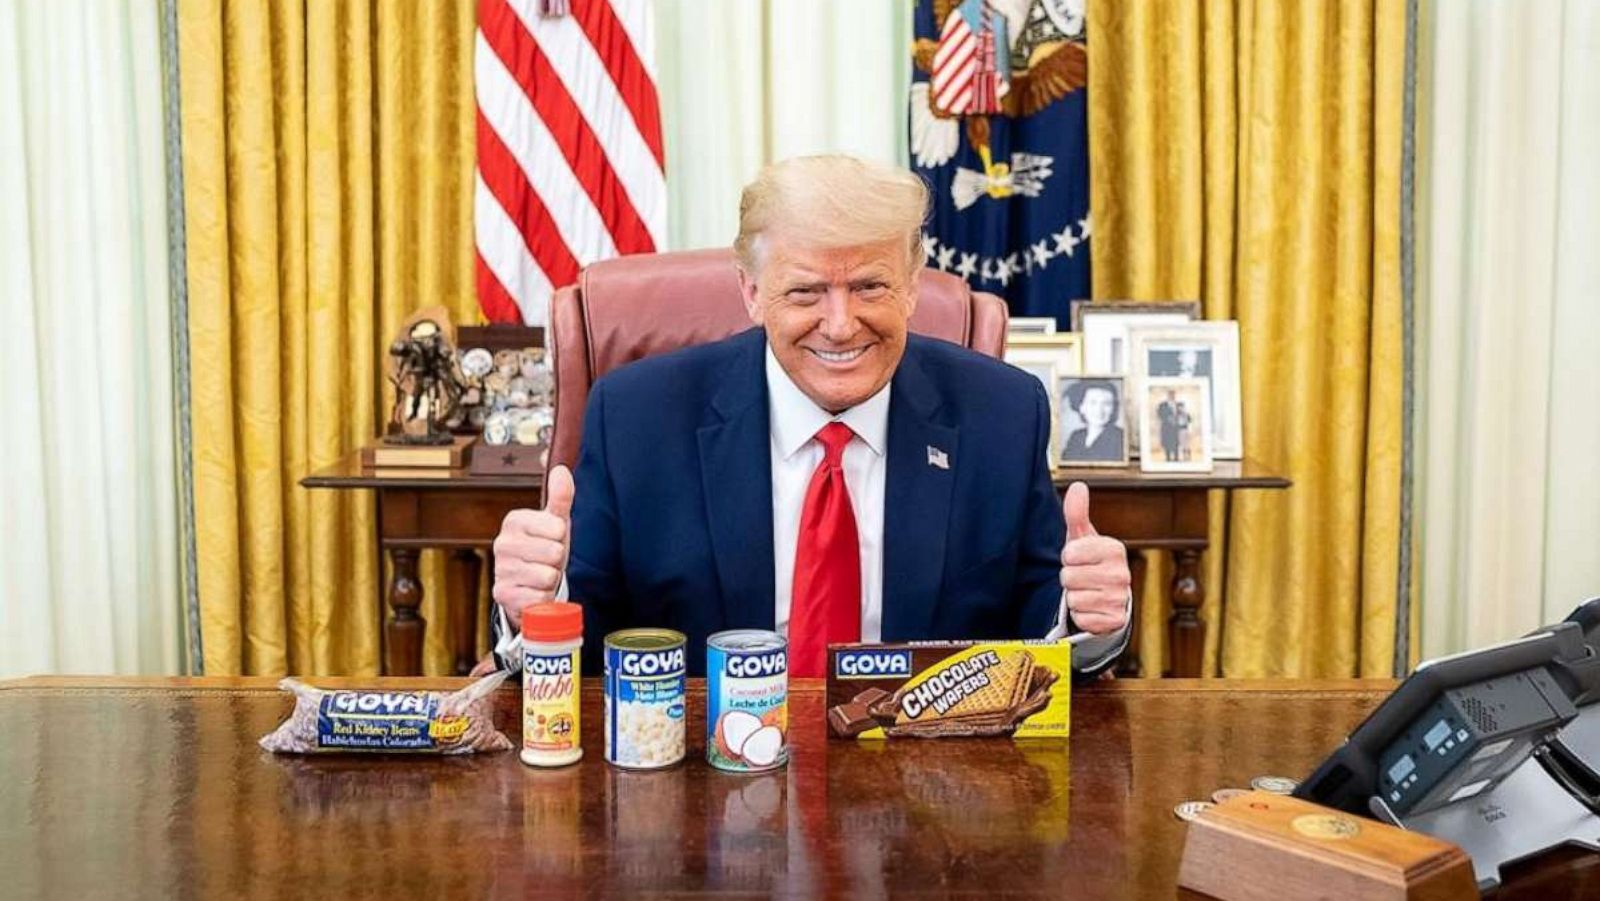 Donald Trump's Niece Slams Him For Posing With Goya Products Amid The Pandemic – 140,000 Americans Dead But He's 'Hawking Beans!'